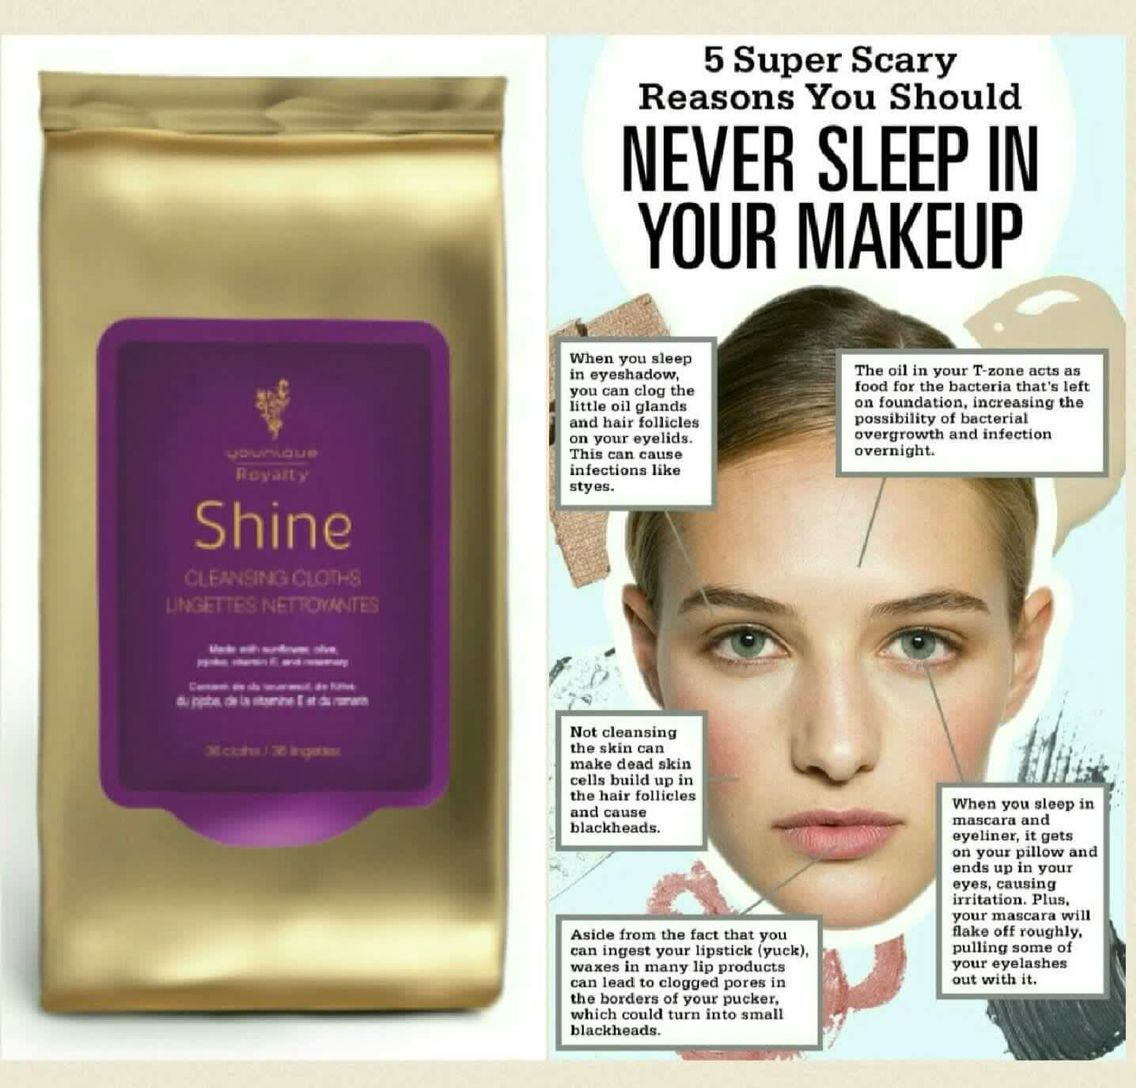 Shine wipes are amazing never go to bed with makeup on